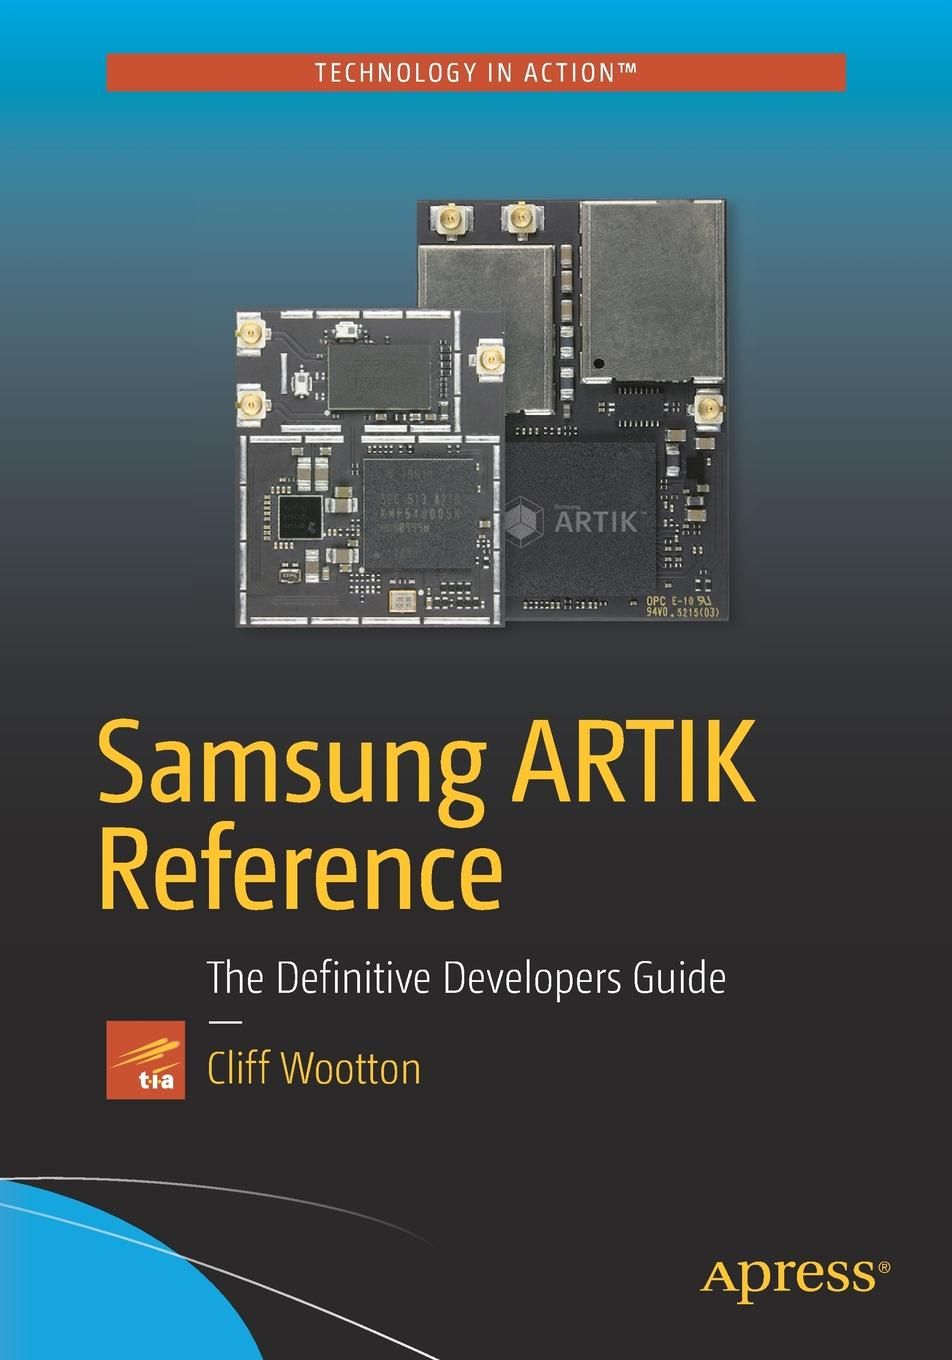 цена на Cliff Wootton Samsung ARTIK Reference. The Definitive Developers Guide